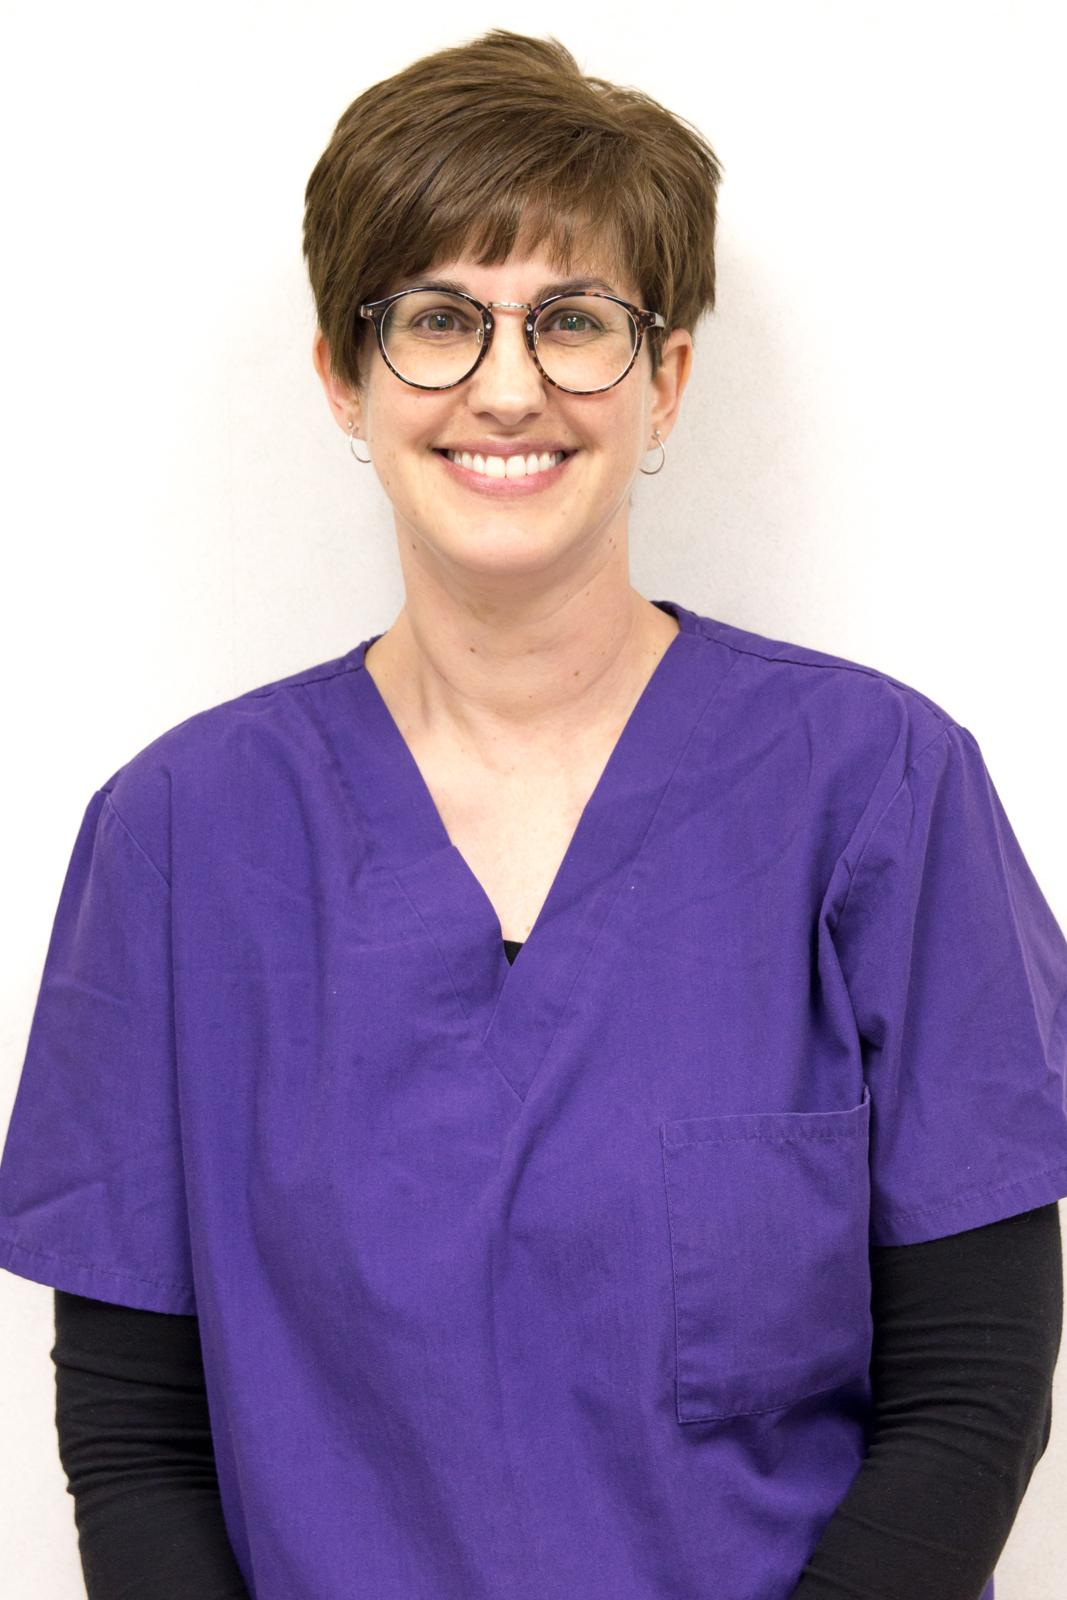 dental assistant - With 26 years of dental experience, Cathy joined the practice of Dr. Edward Amos in 1998. She made the transition to Amos Family Dentistry upon Dr. Edward Amos' retirement. Cathy lives on the Shenandoah River with her family. She enjoys attending her daughters sporting events and those at her alma mater, JMU.